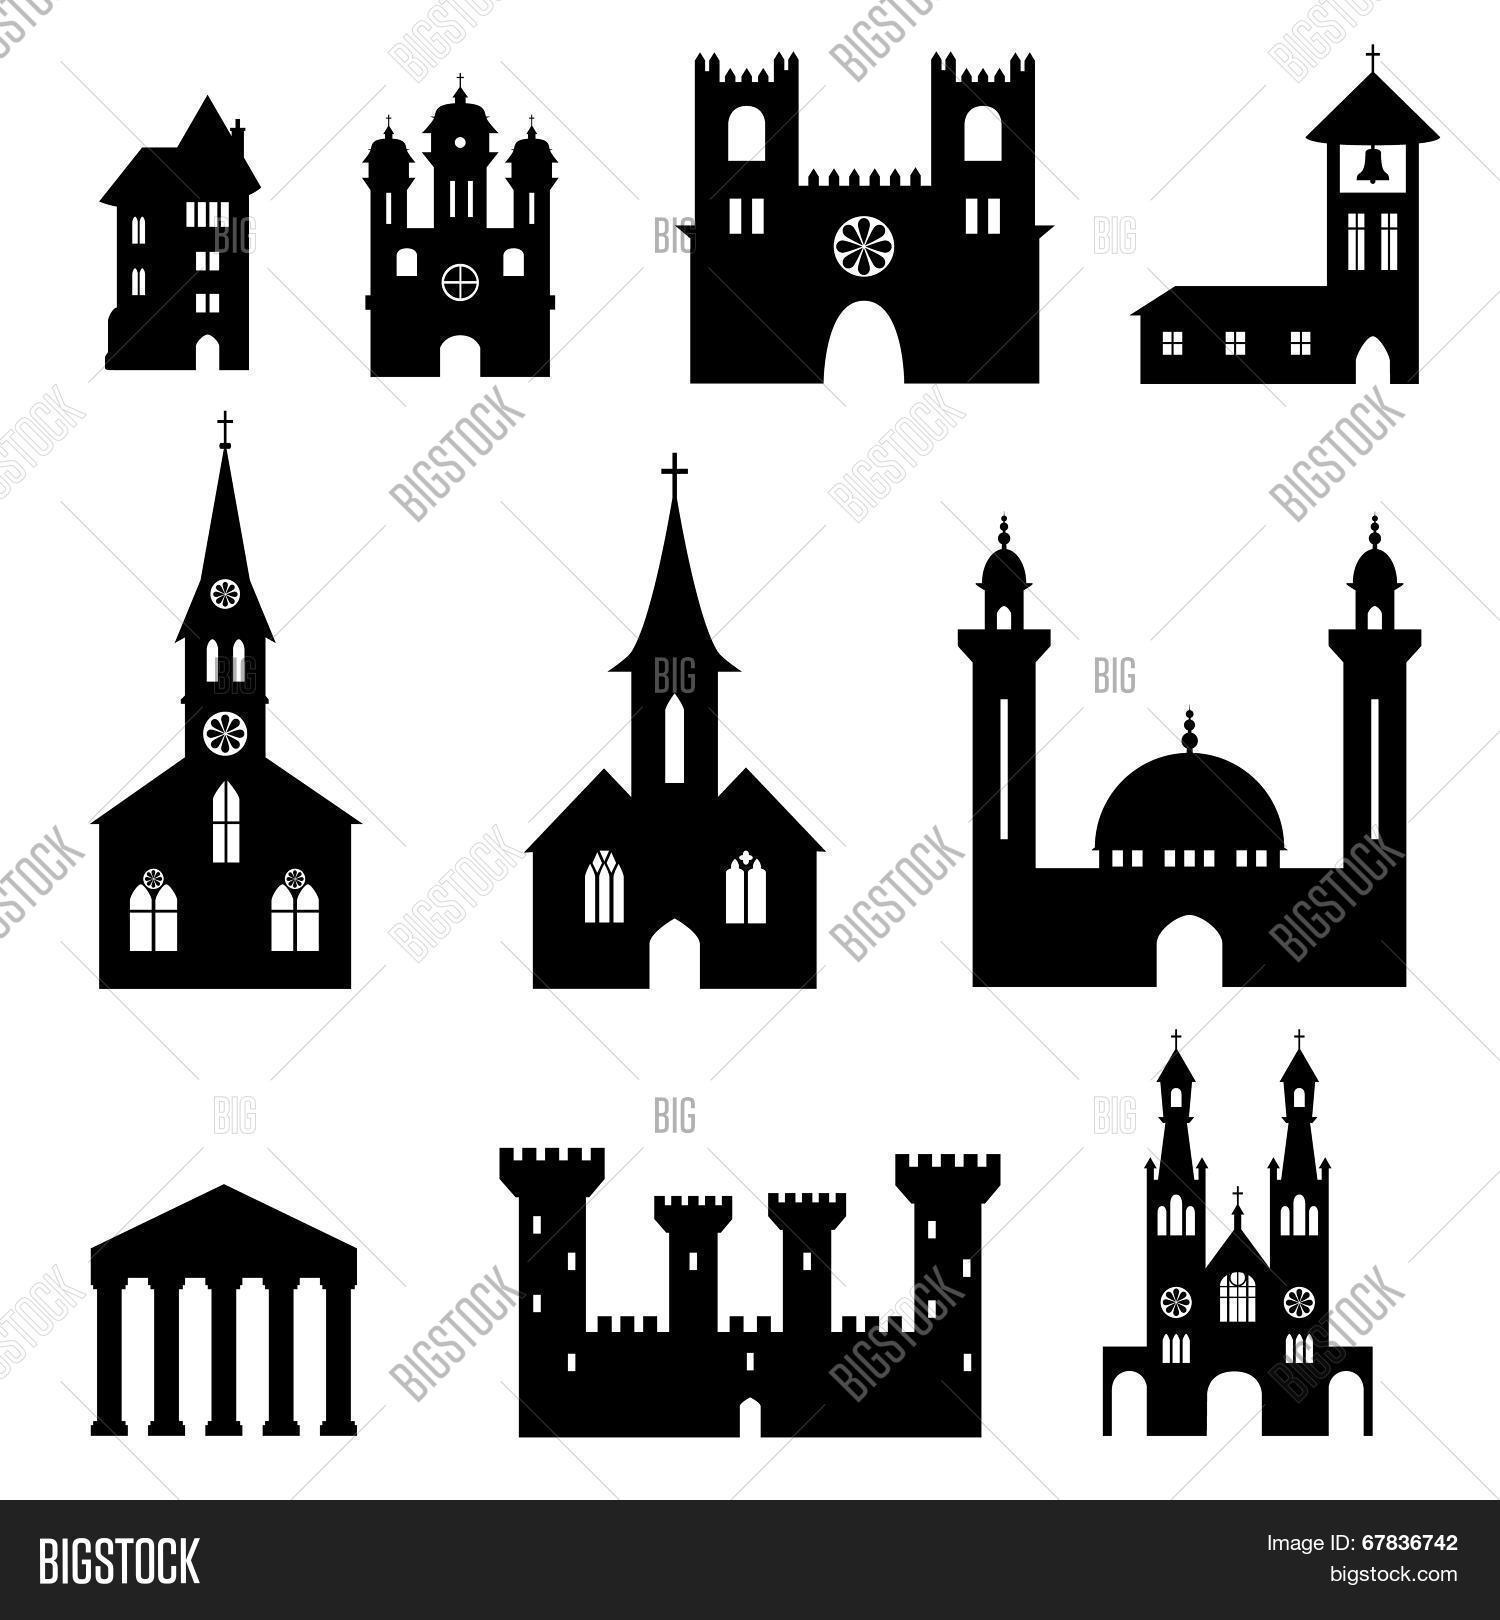 Bundle of church and castle silhouettes Stock Vector & Stock.